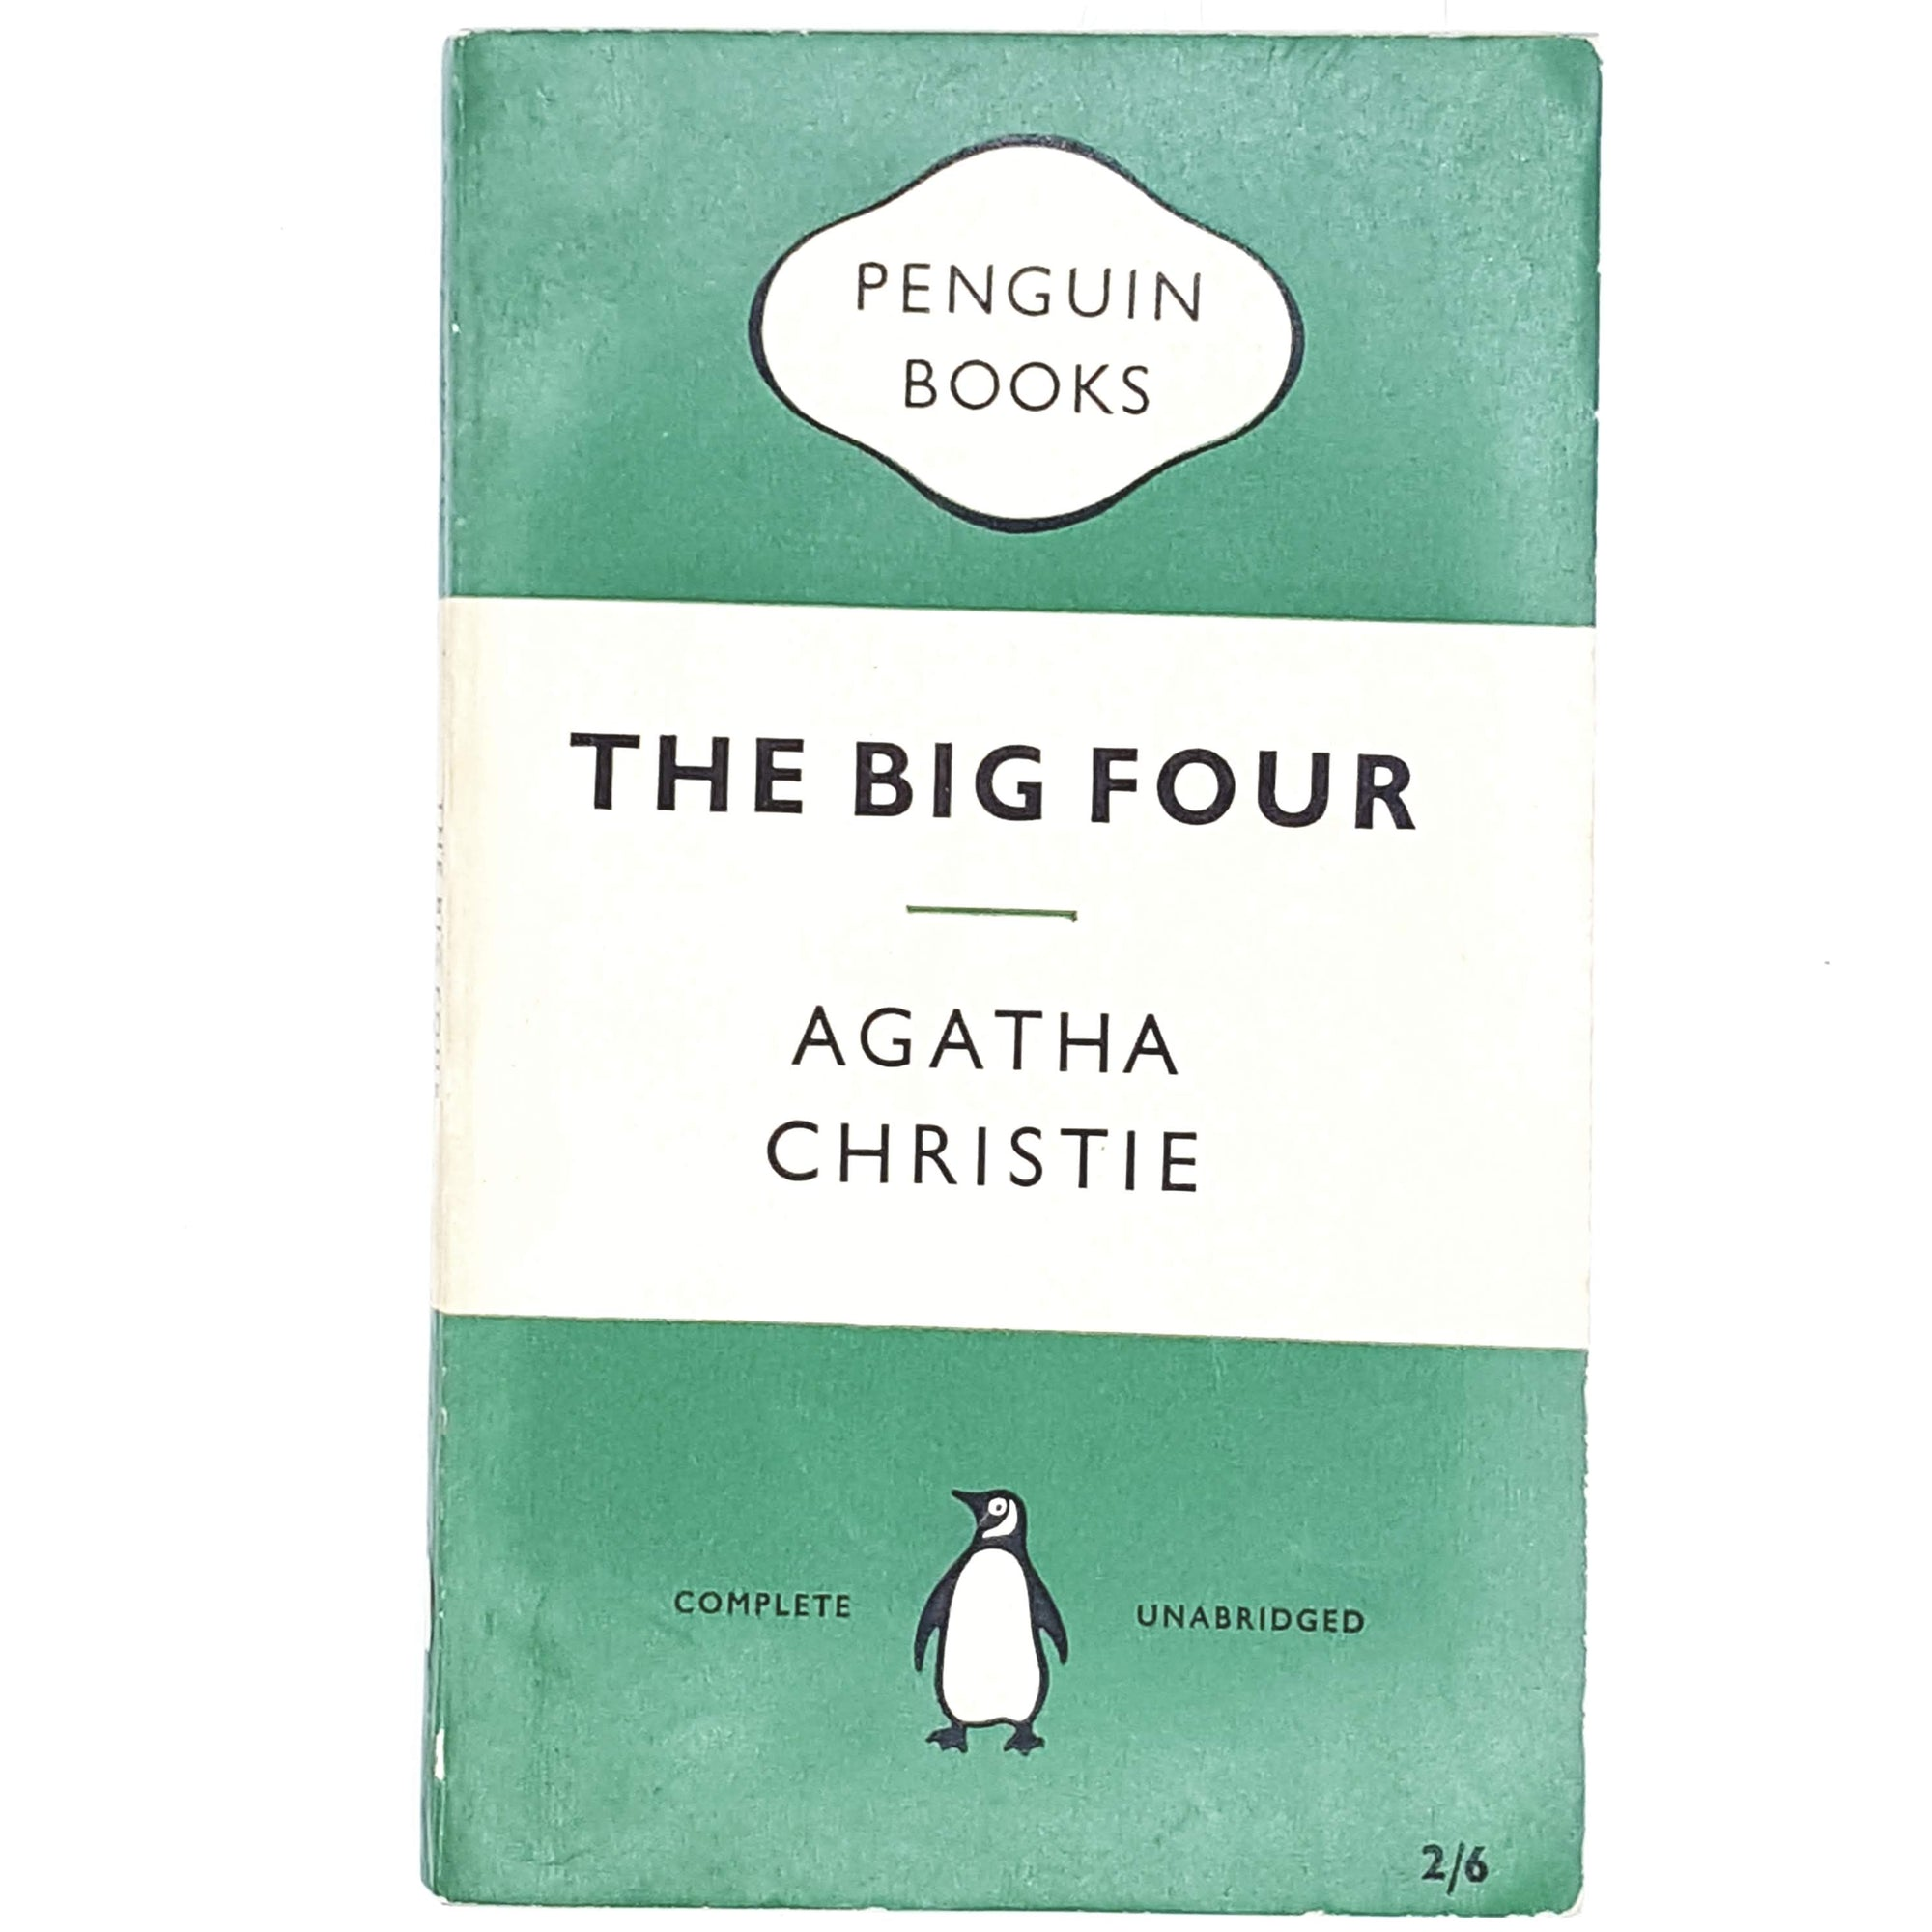 Agatha Christie's The Big Four 1959